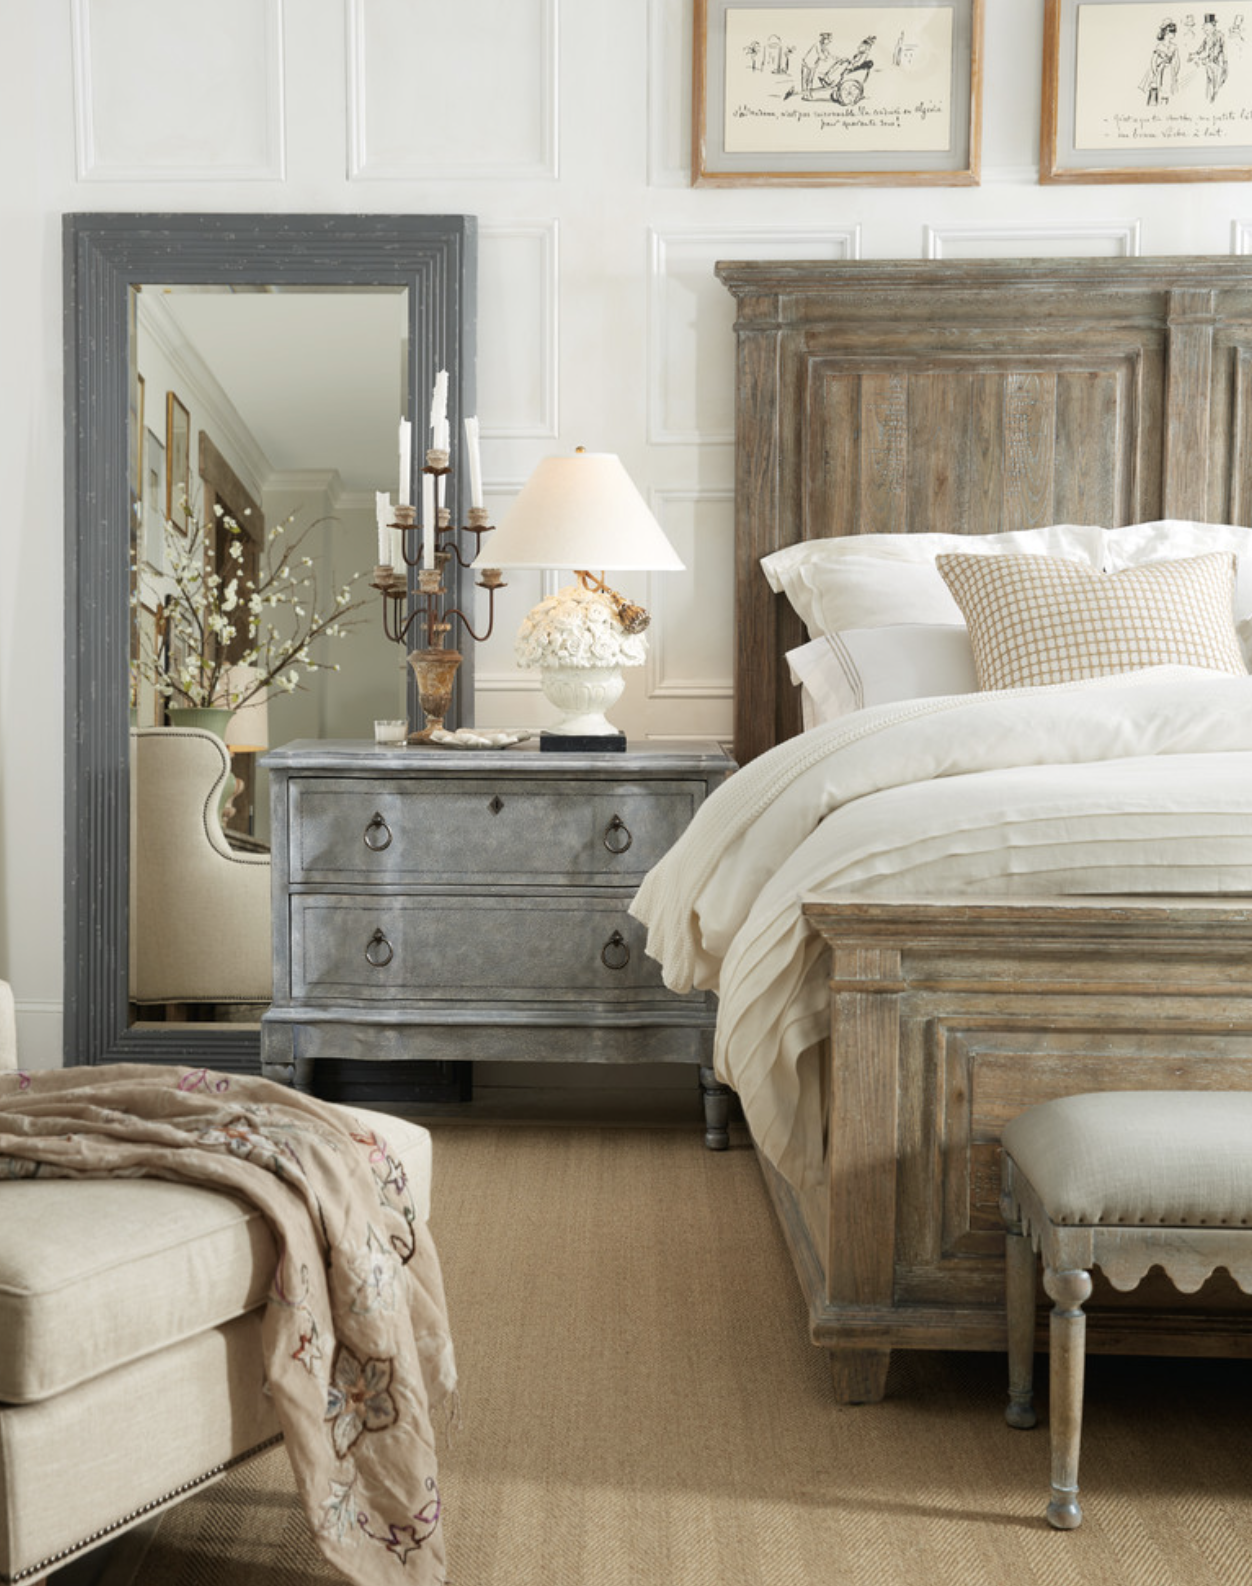 Neutral Colors Are A Great Way To Make Your Bedroom Feel Nice And